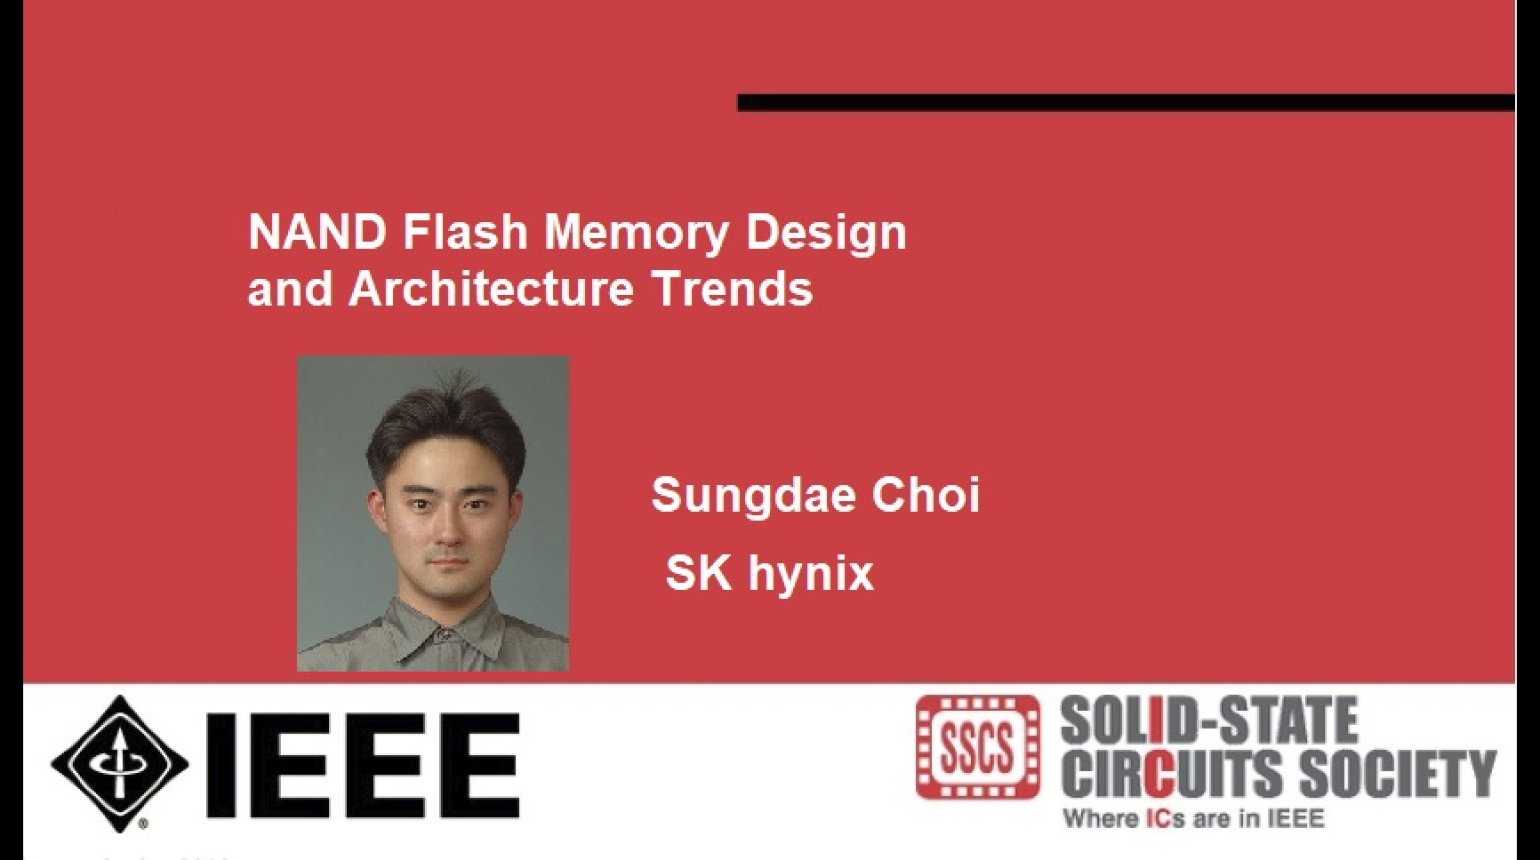 NAND Flash Memory Design and Architecture Trends Video